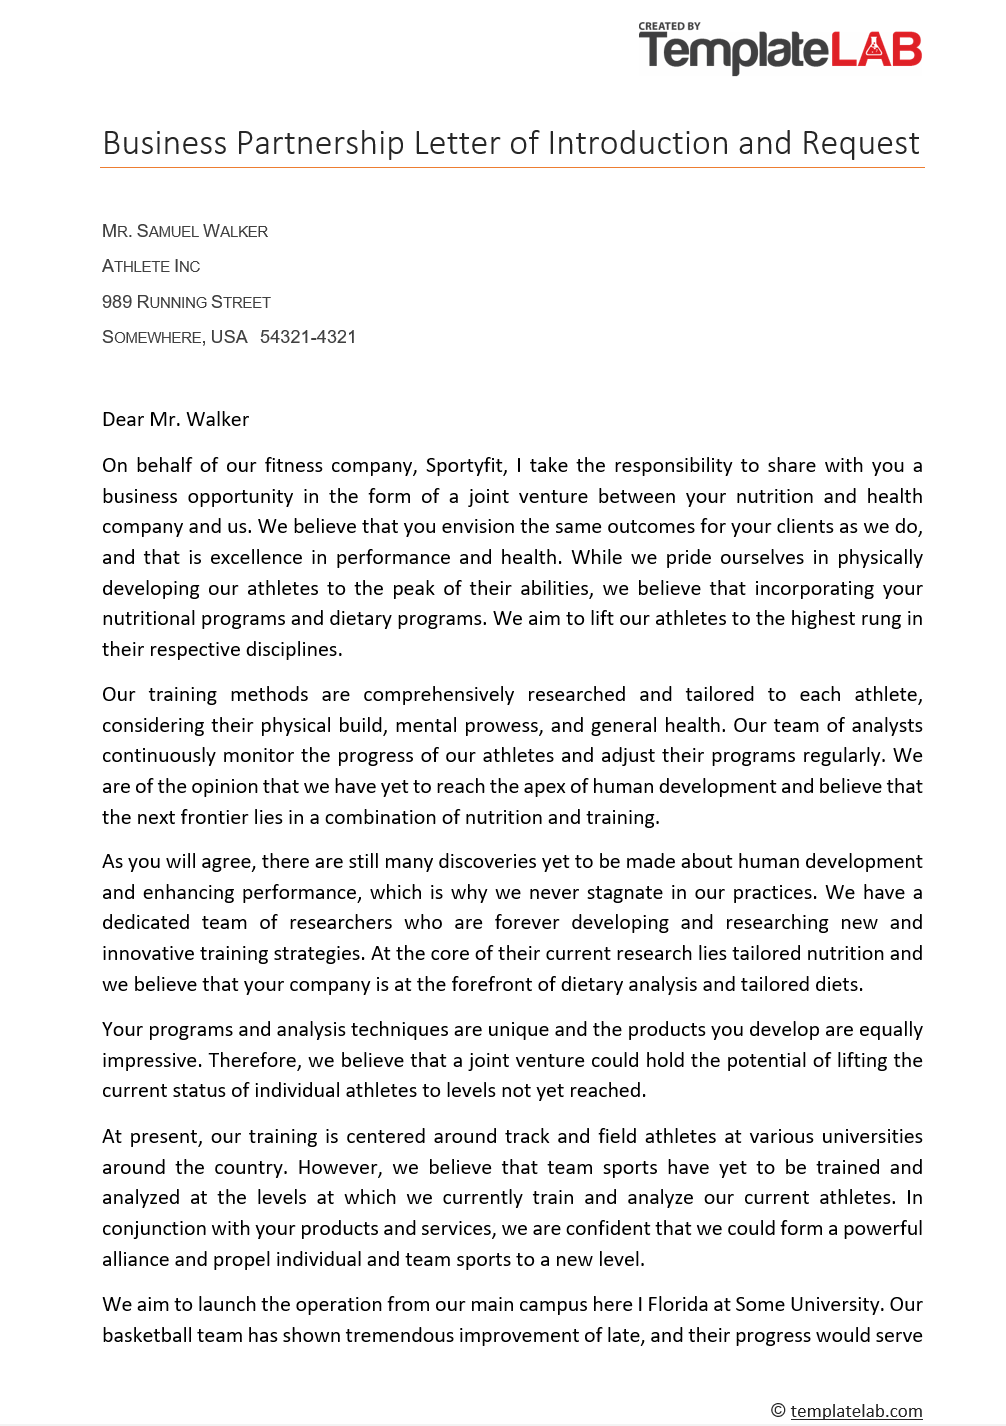 Free Business Partnership Letter of Introduction 1